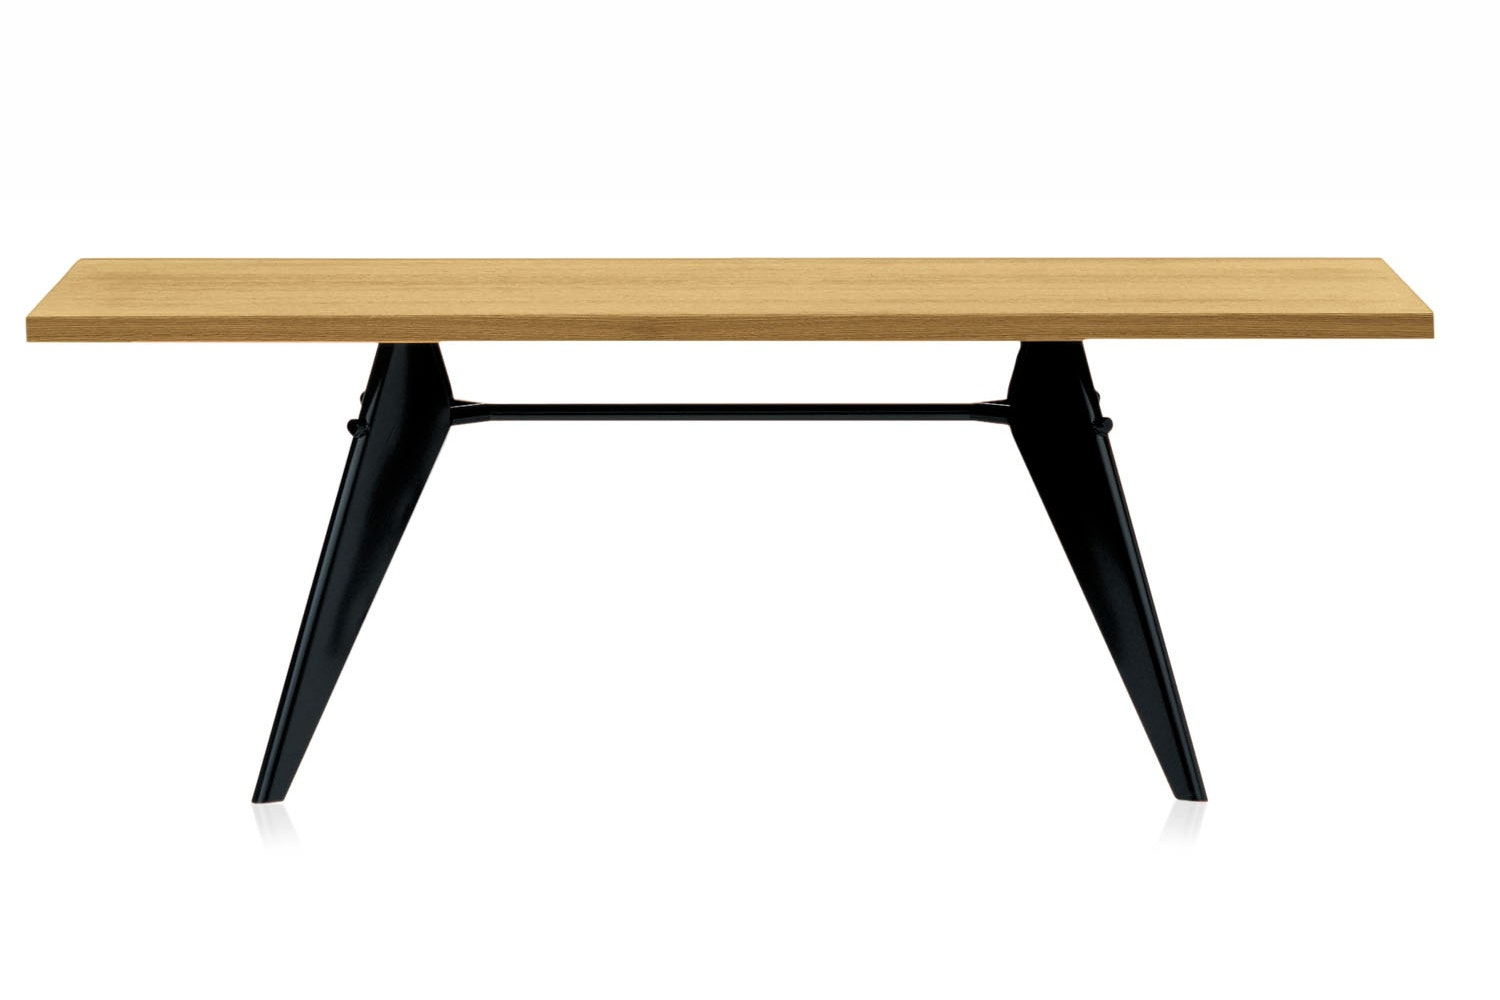 EM Table by Jean Prouve for Vitra